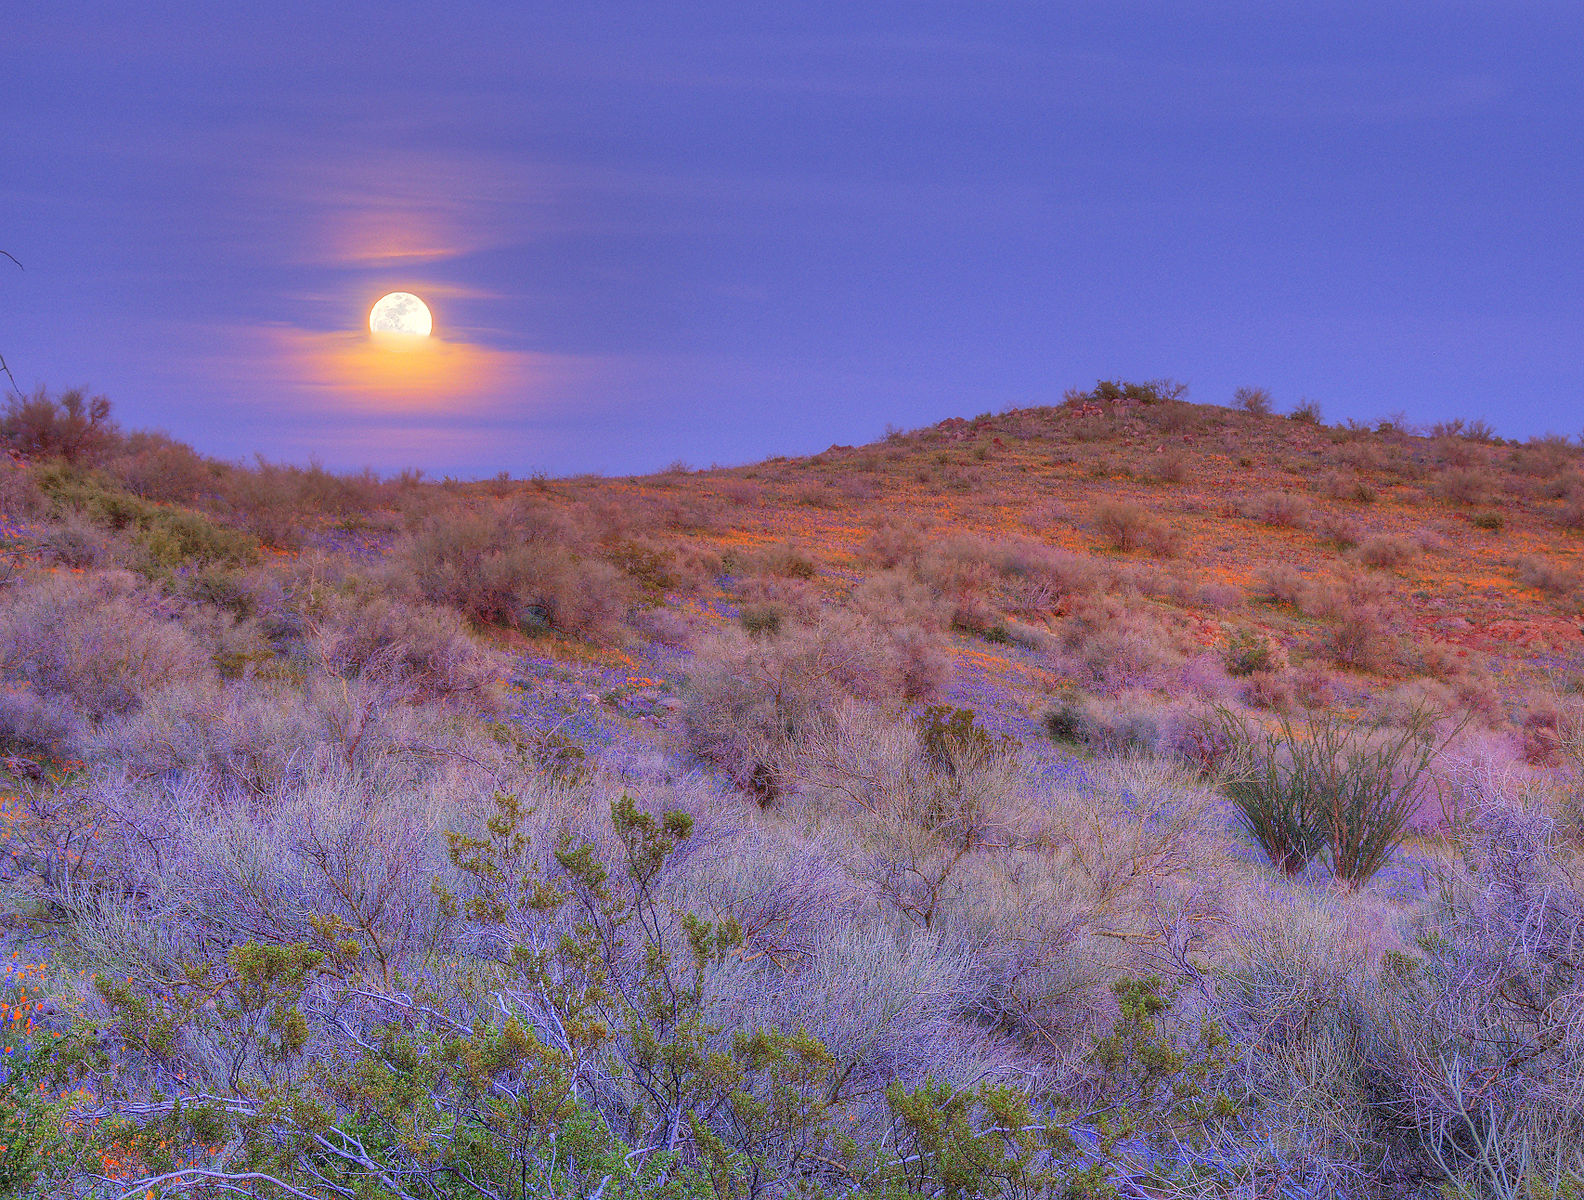 Desert landscape with a moon rising in a royal blue sky above purple, green, and salmon groundcover